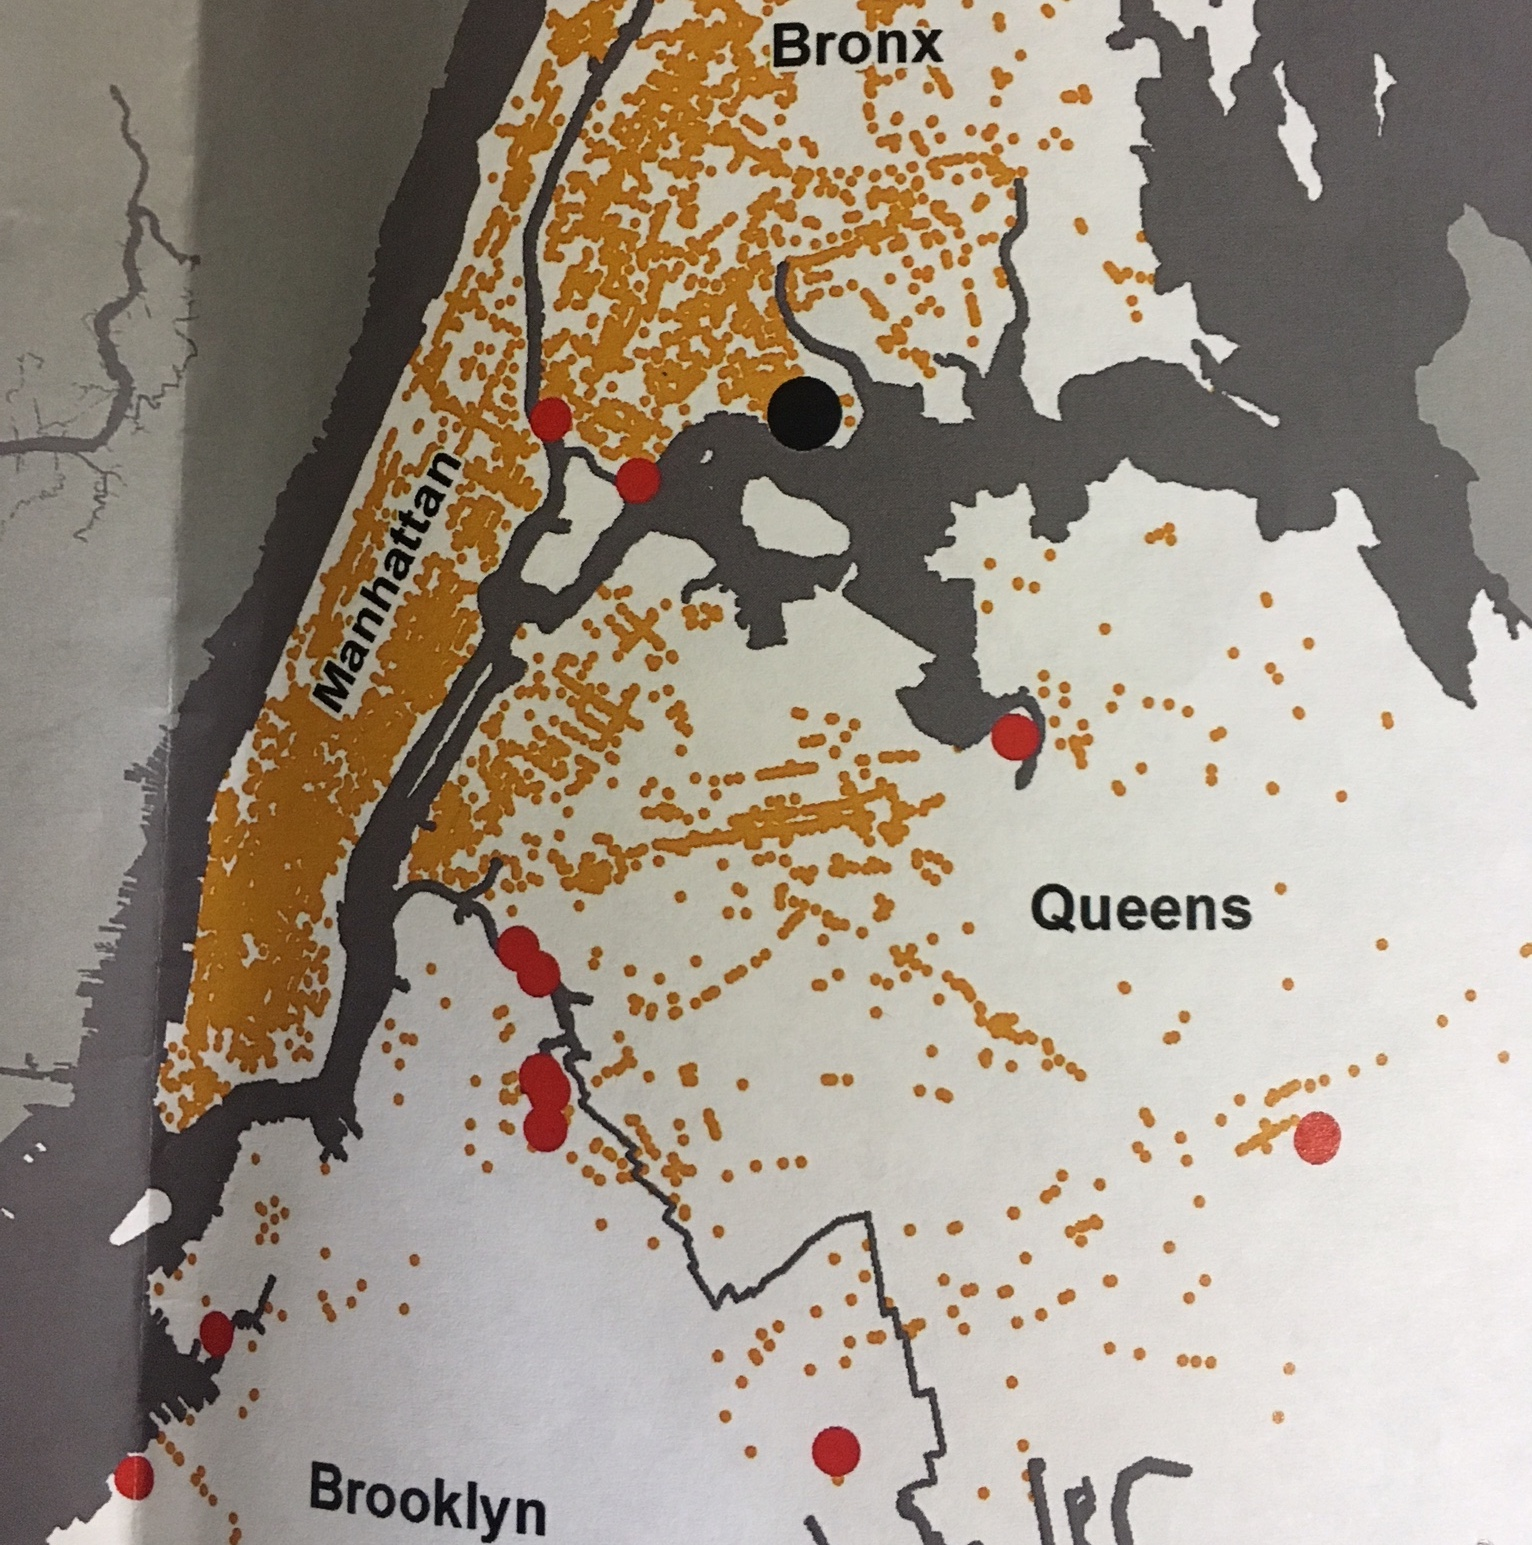 From the editor:Bring less garbage to the South Bronx